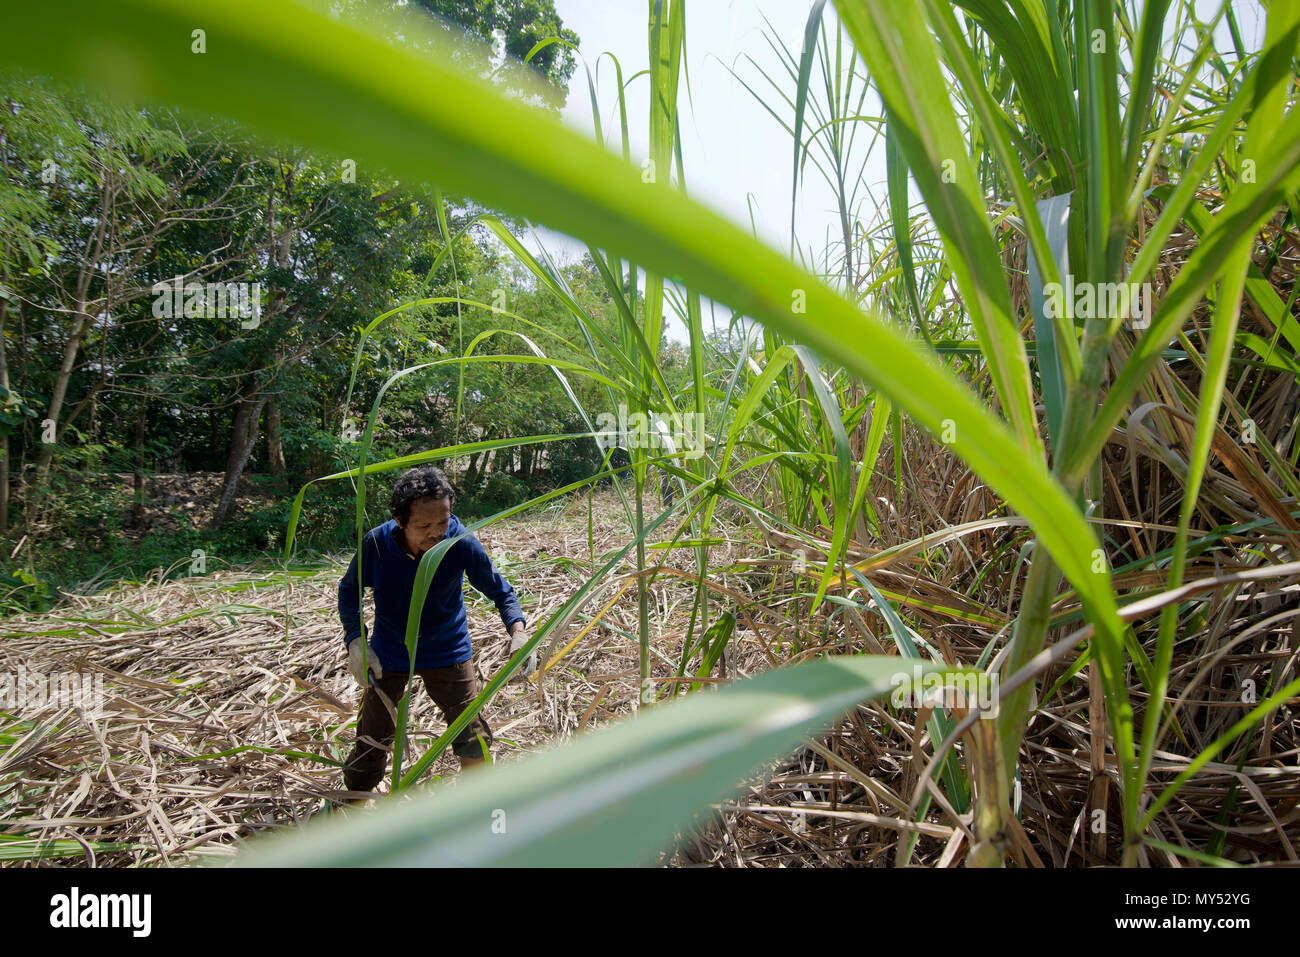 A contract worker harvesting sugarcane in Central Java, Indonesia. © Reynold Sumayku - Stock Image